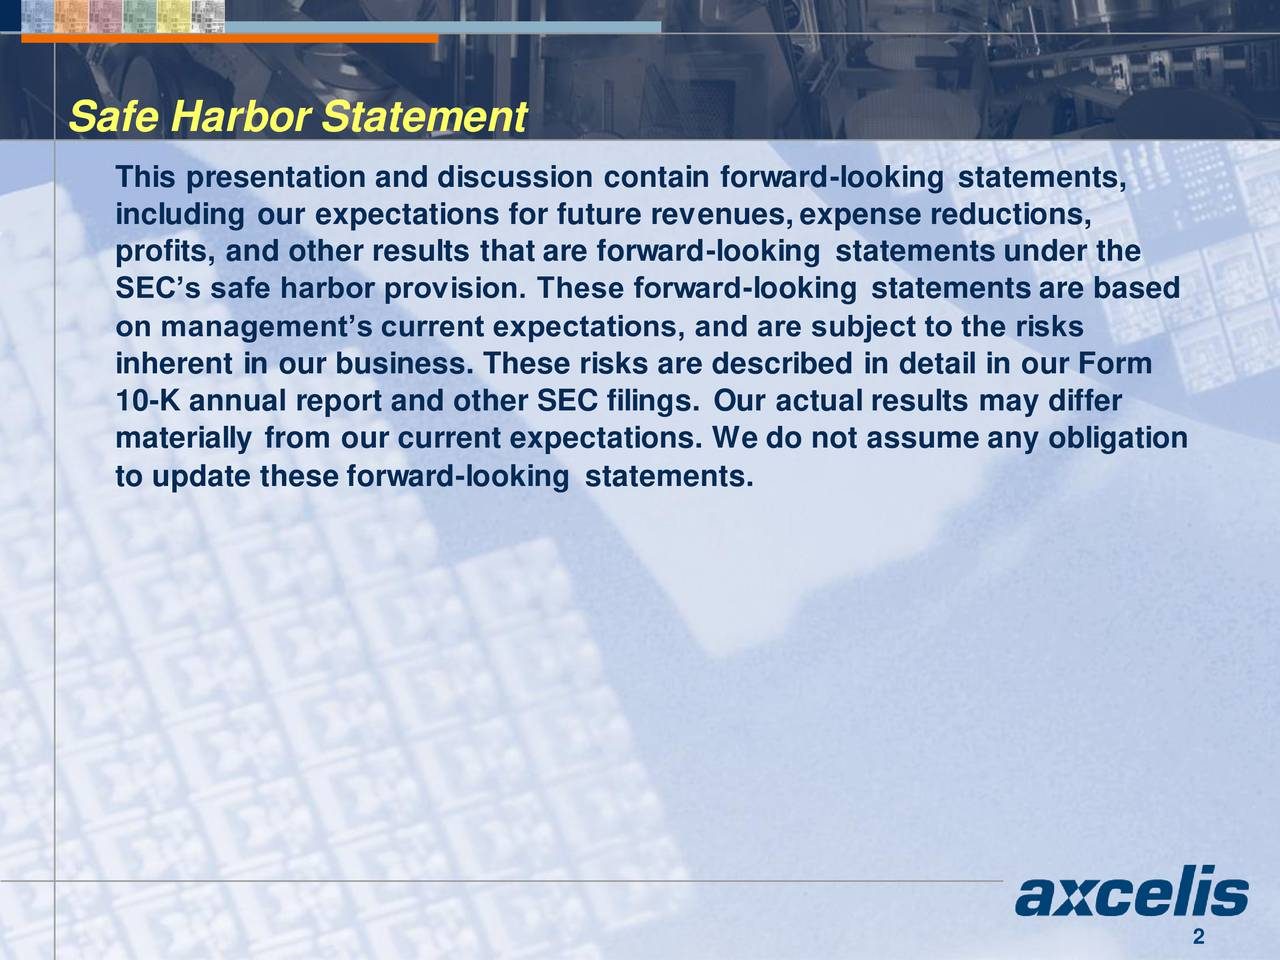 This presentation and discussion contain forward-looking statements, including our expectations for future revenues, expense reductions, profits, and other results that are forward-looking statements under the SECs safe harbor provision. These forward-looking statements are based on managements current expectations, and are subject to the risks inherent in our business. These risks are described in detail in our Form 10-K annual report and other SEC filings. Our actual results may differ materially from our current expectations. We do not assume any obligation to update these forward-looking statements. 2